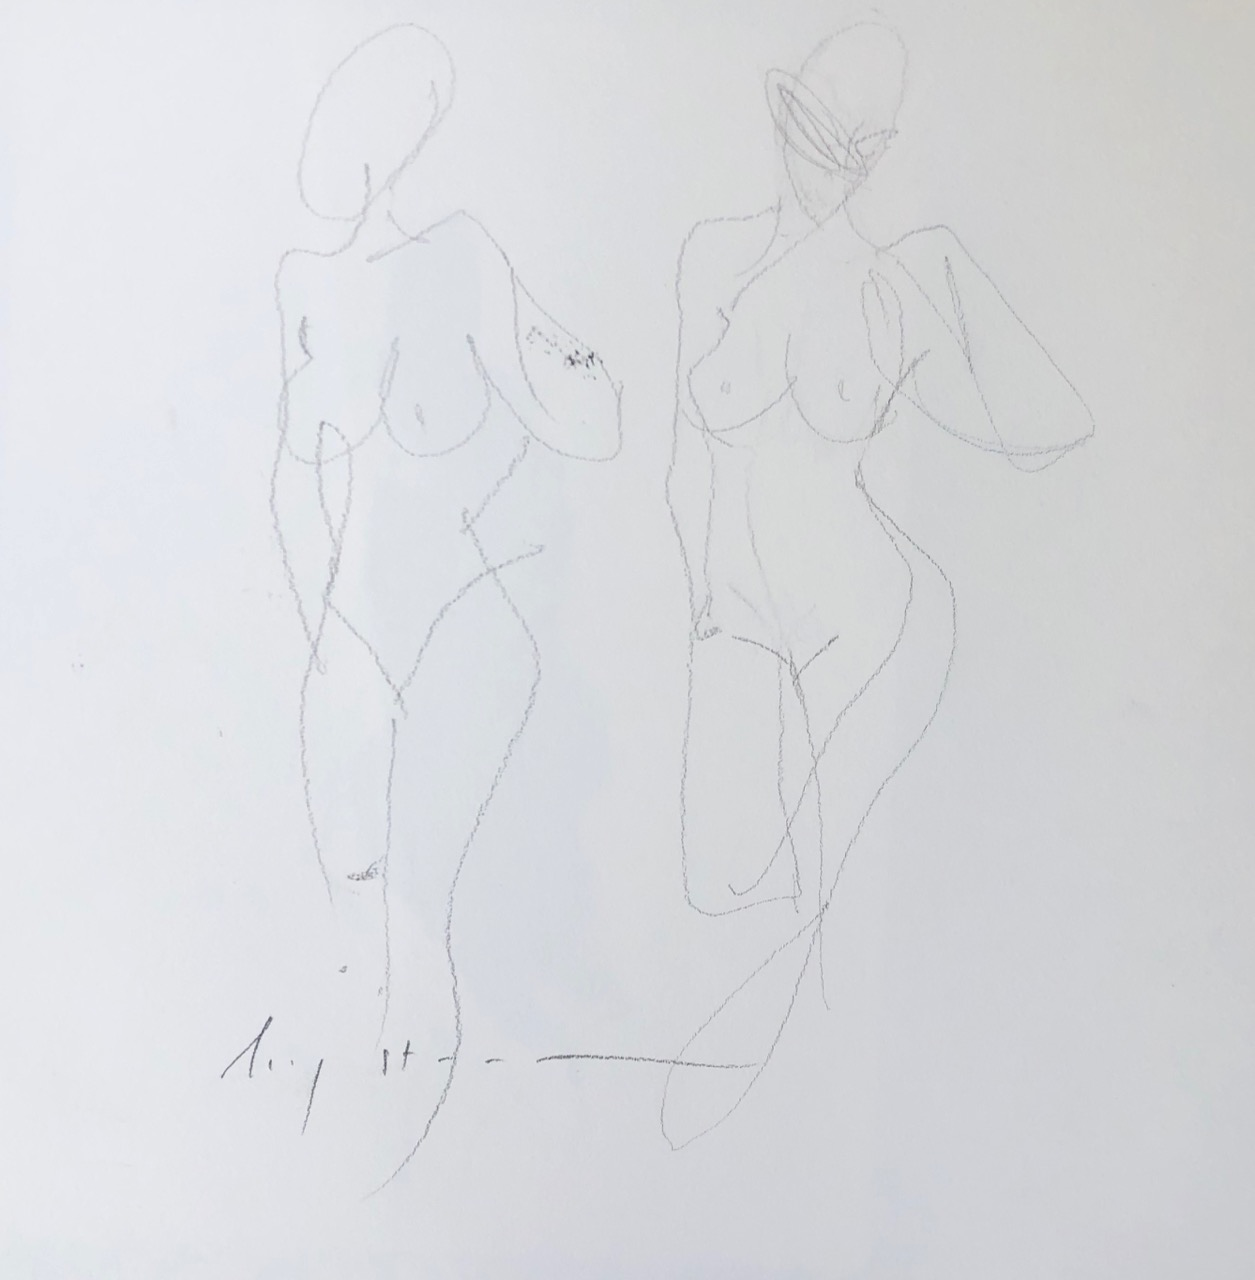 two figures, graphite